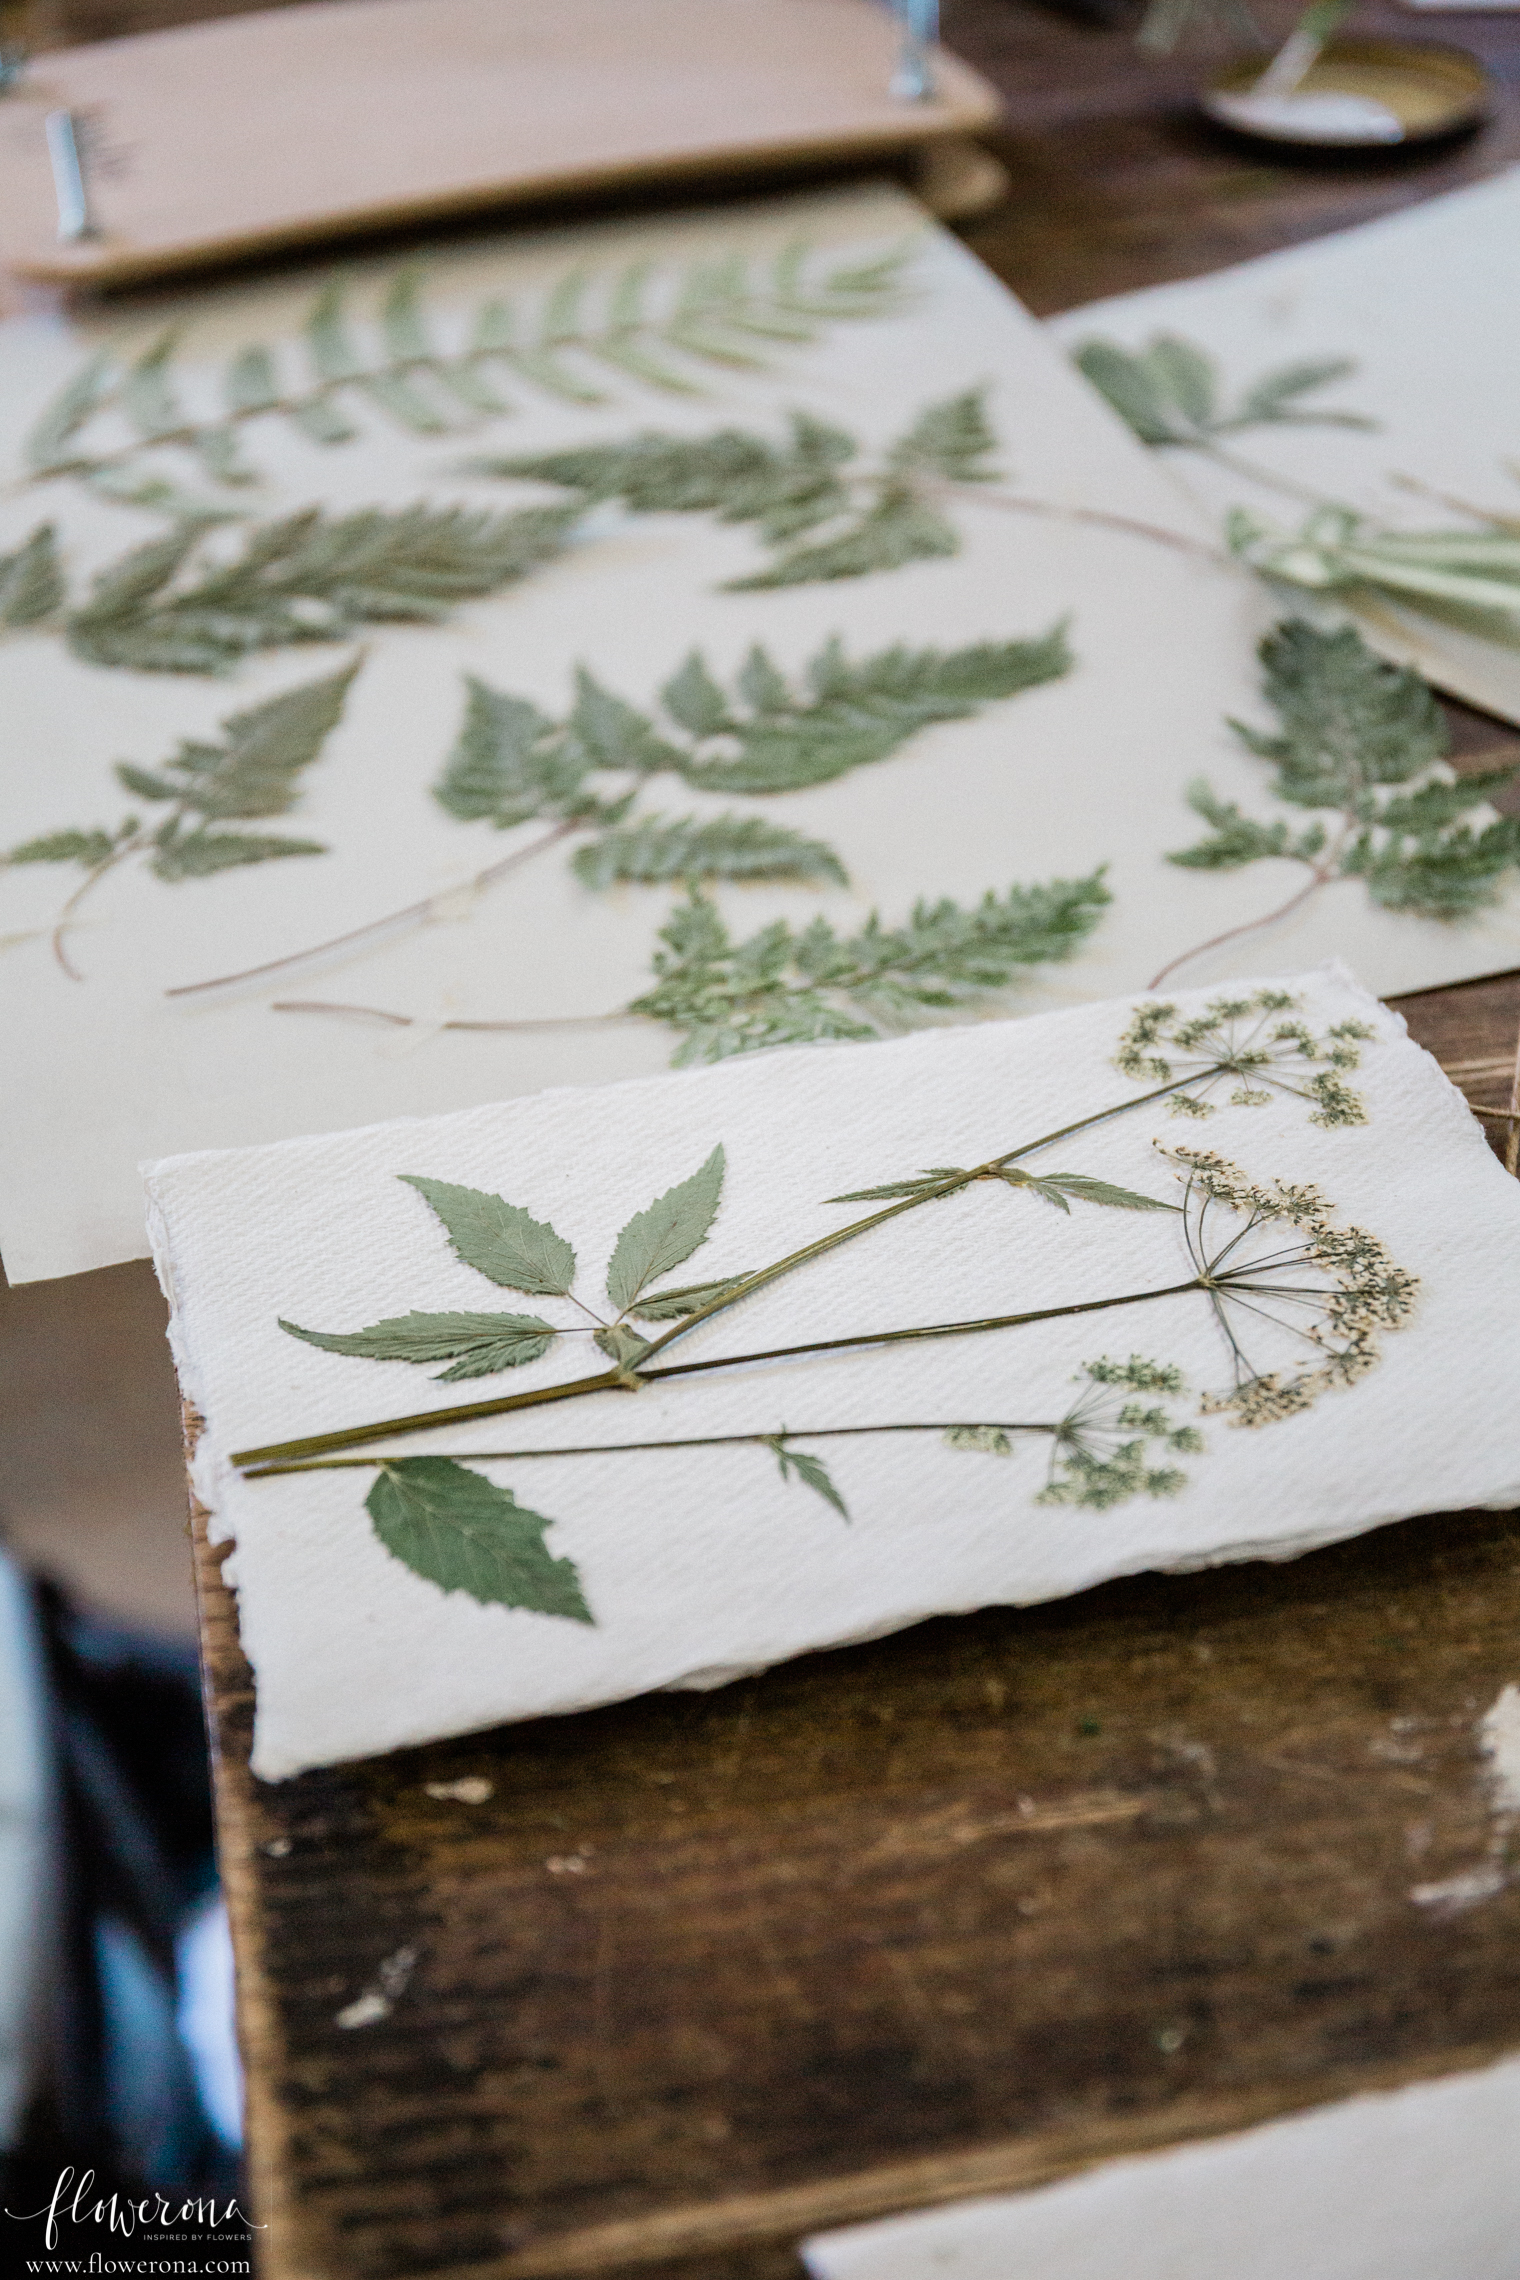 Pressed Flowers & Foliage at the Flower Pressing & Cyanotype Print Workshop with JamJar Edit